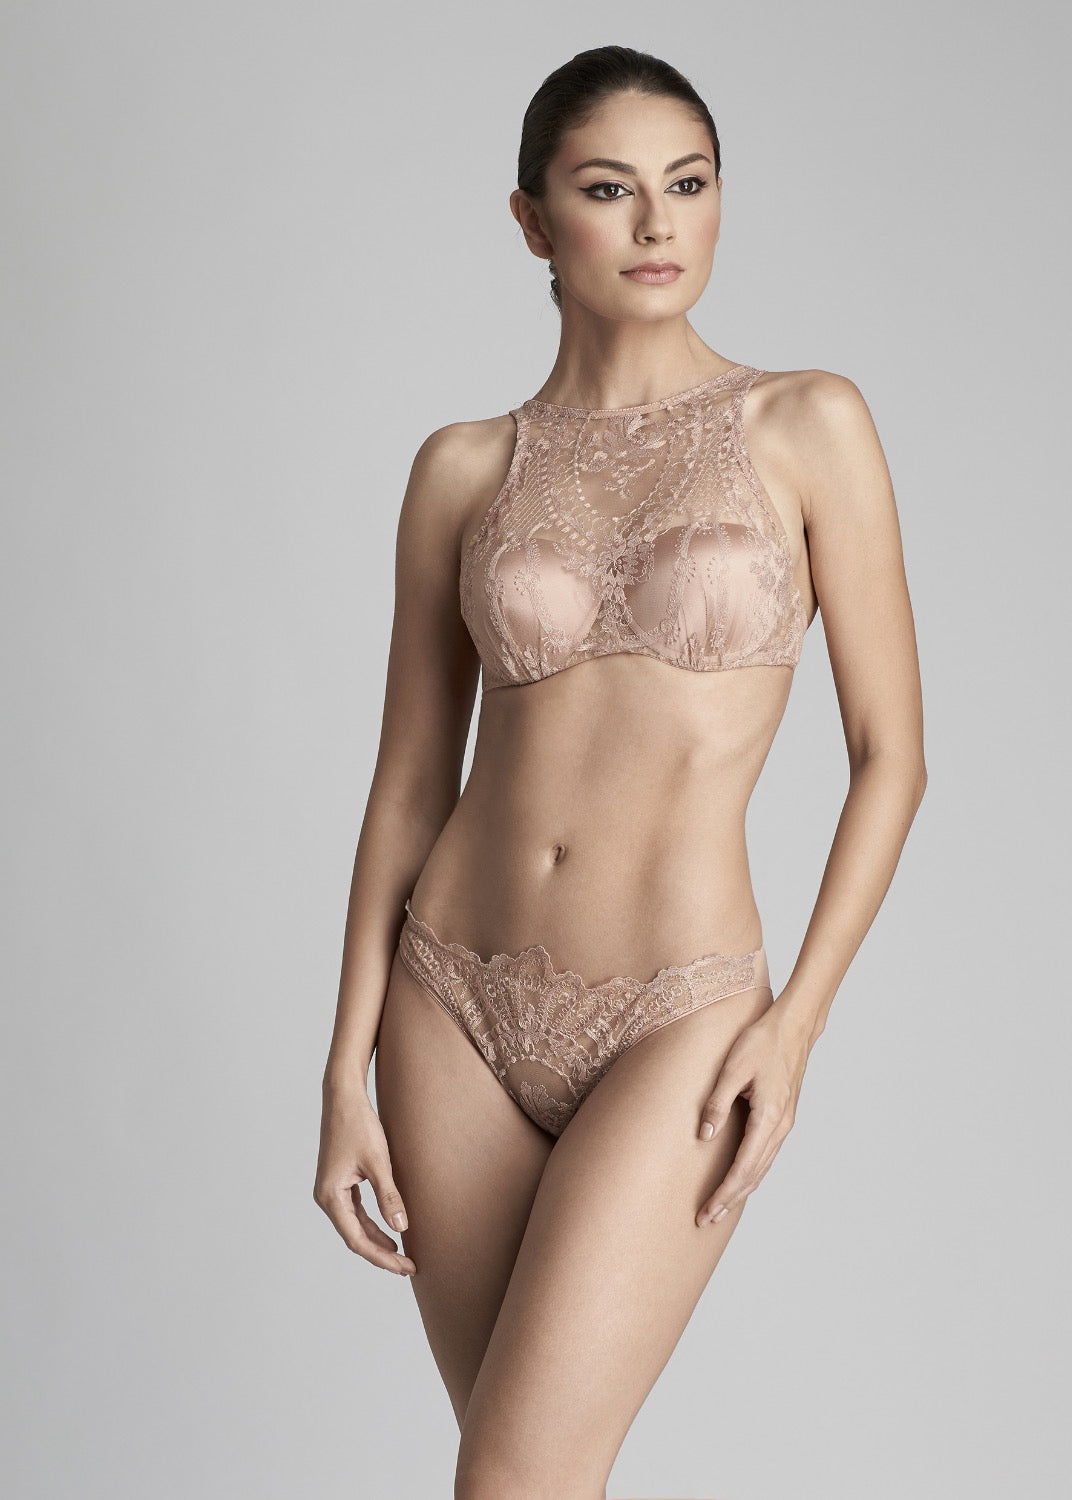 Desert Rose High Neck Padded Push Up Bra in Rose Gold - I.D. Sarrieri